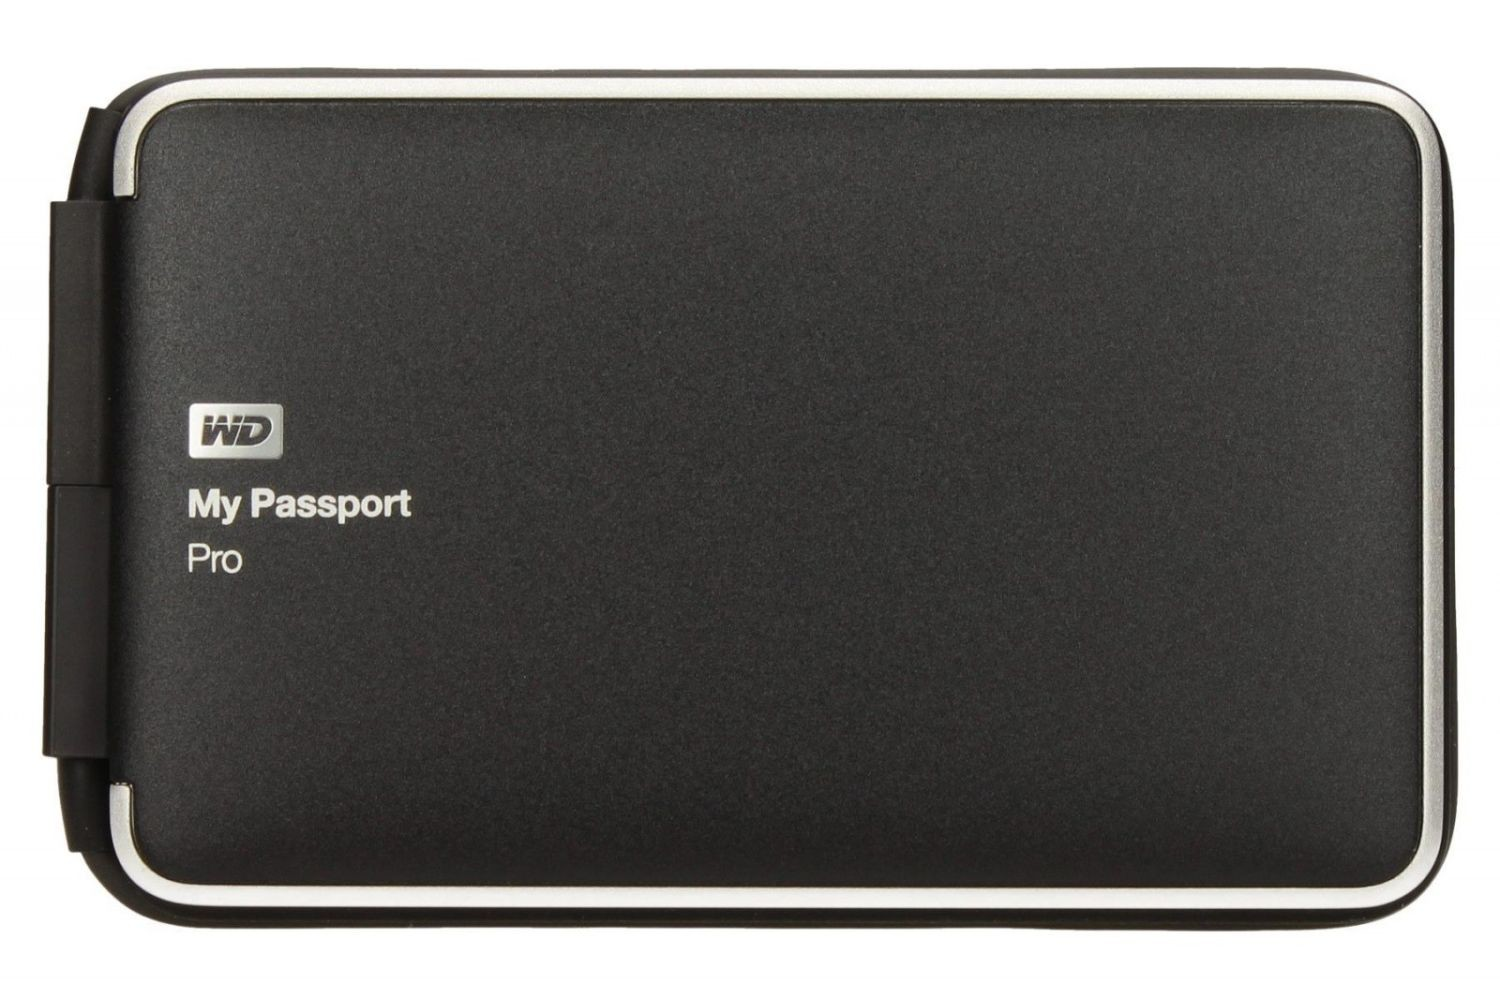 Western Digital WD My Passport Pro Thunderbolt RAID 0/1 2TB Mac formatted integrated cable 2,5inch External RTL